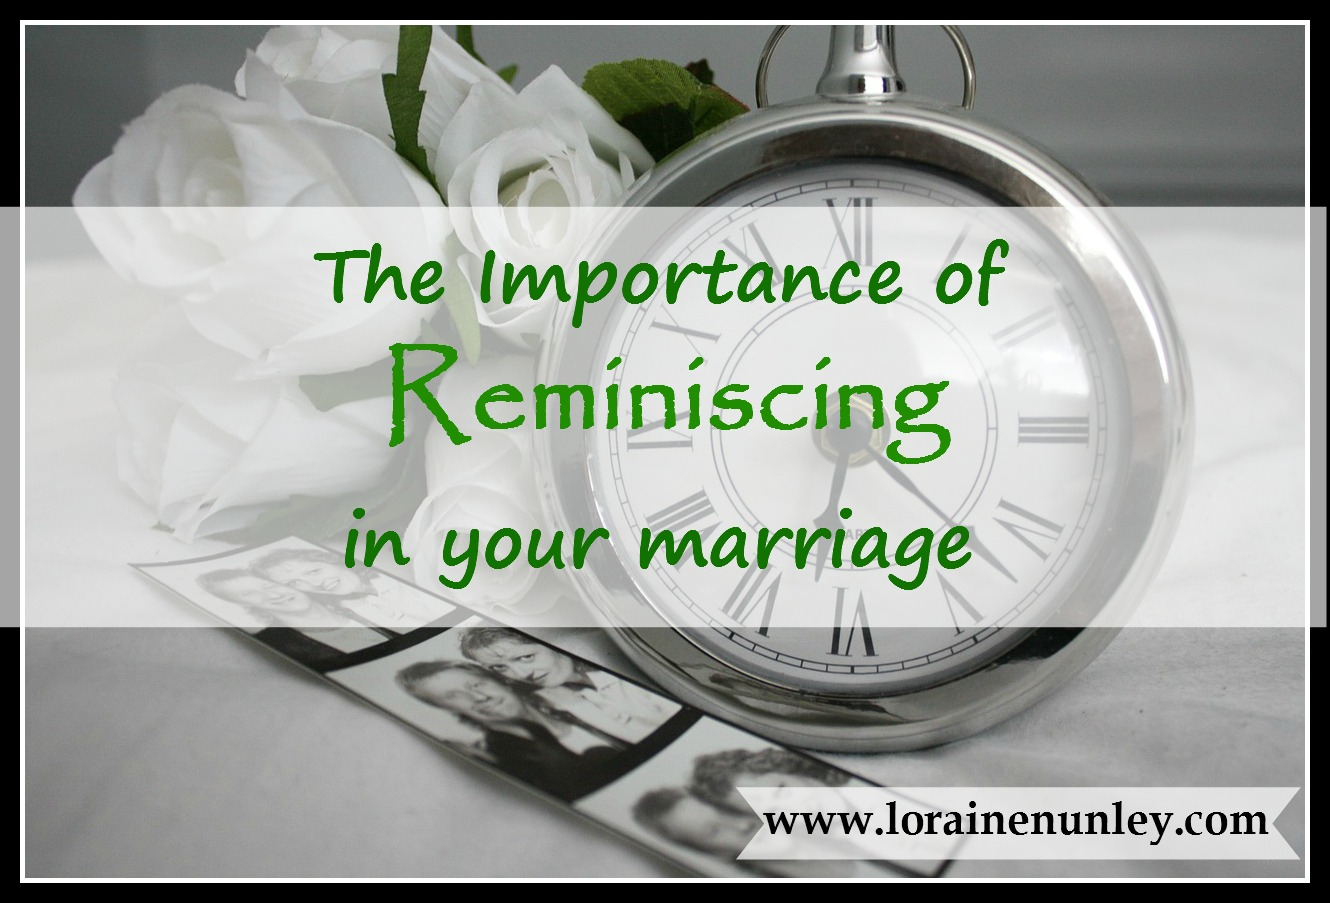 The Importance of Reminiscing in your Marriage